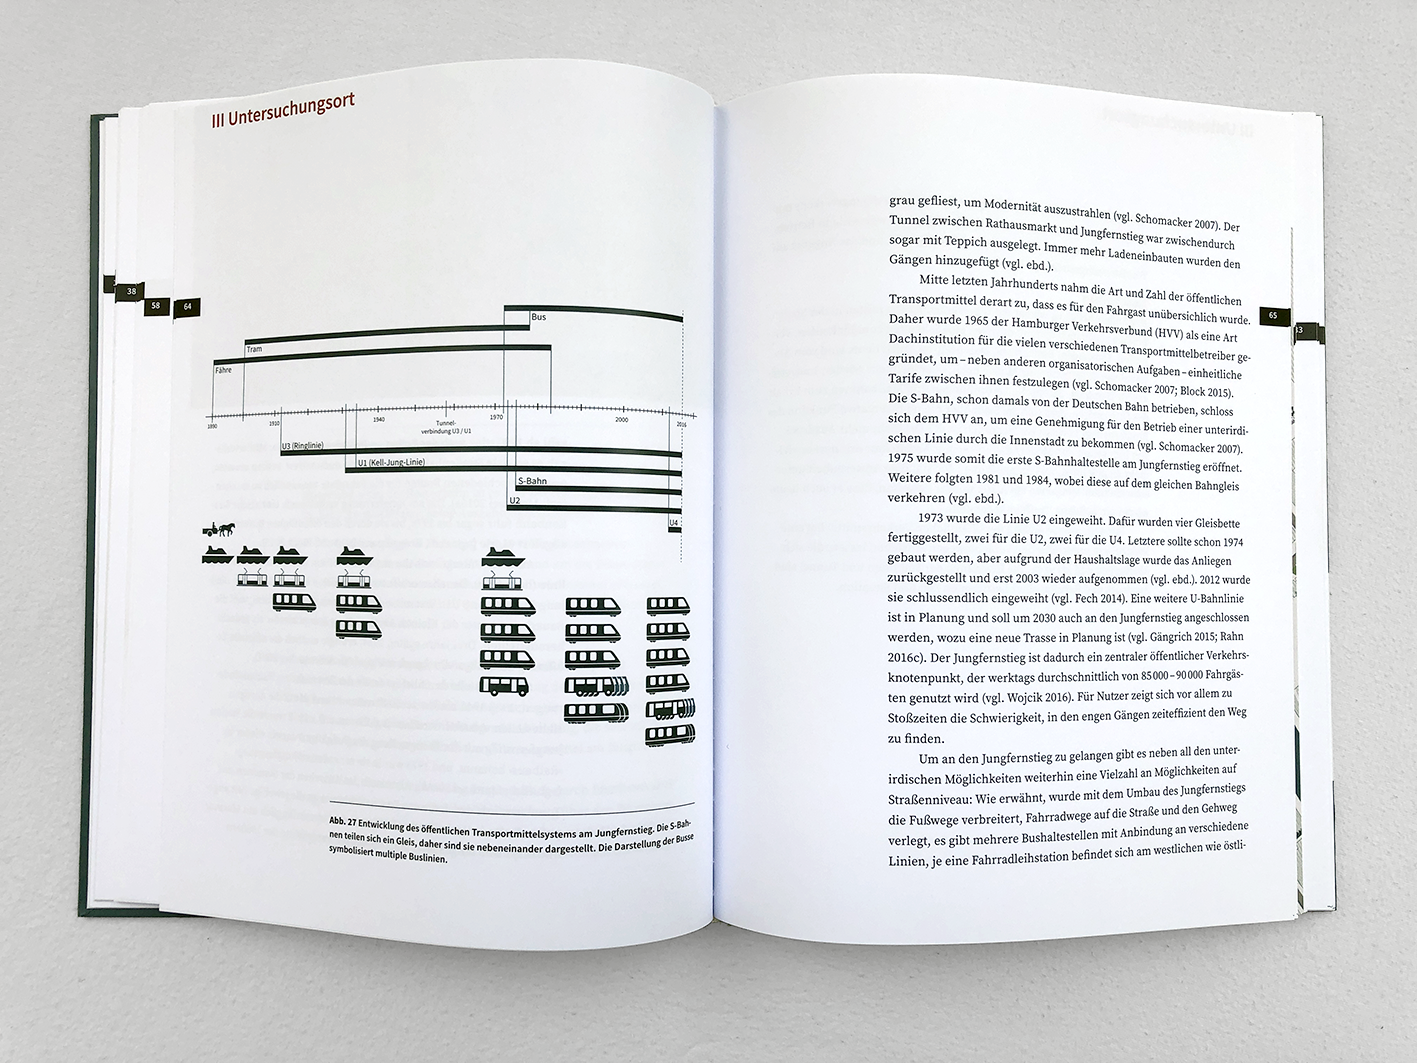 Extract from my Master thesis on different wayfinding systems within Hamburg: Visualization of the development of public transport in Hamburg over time.